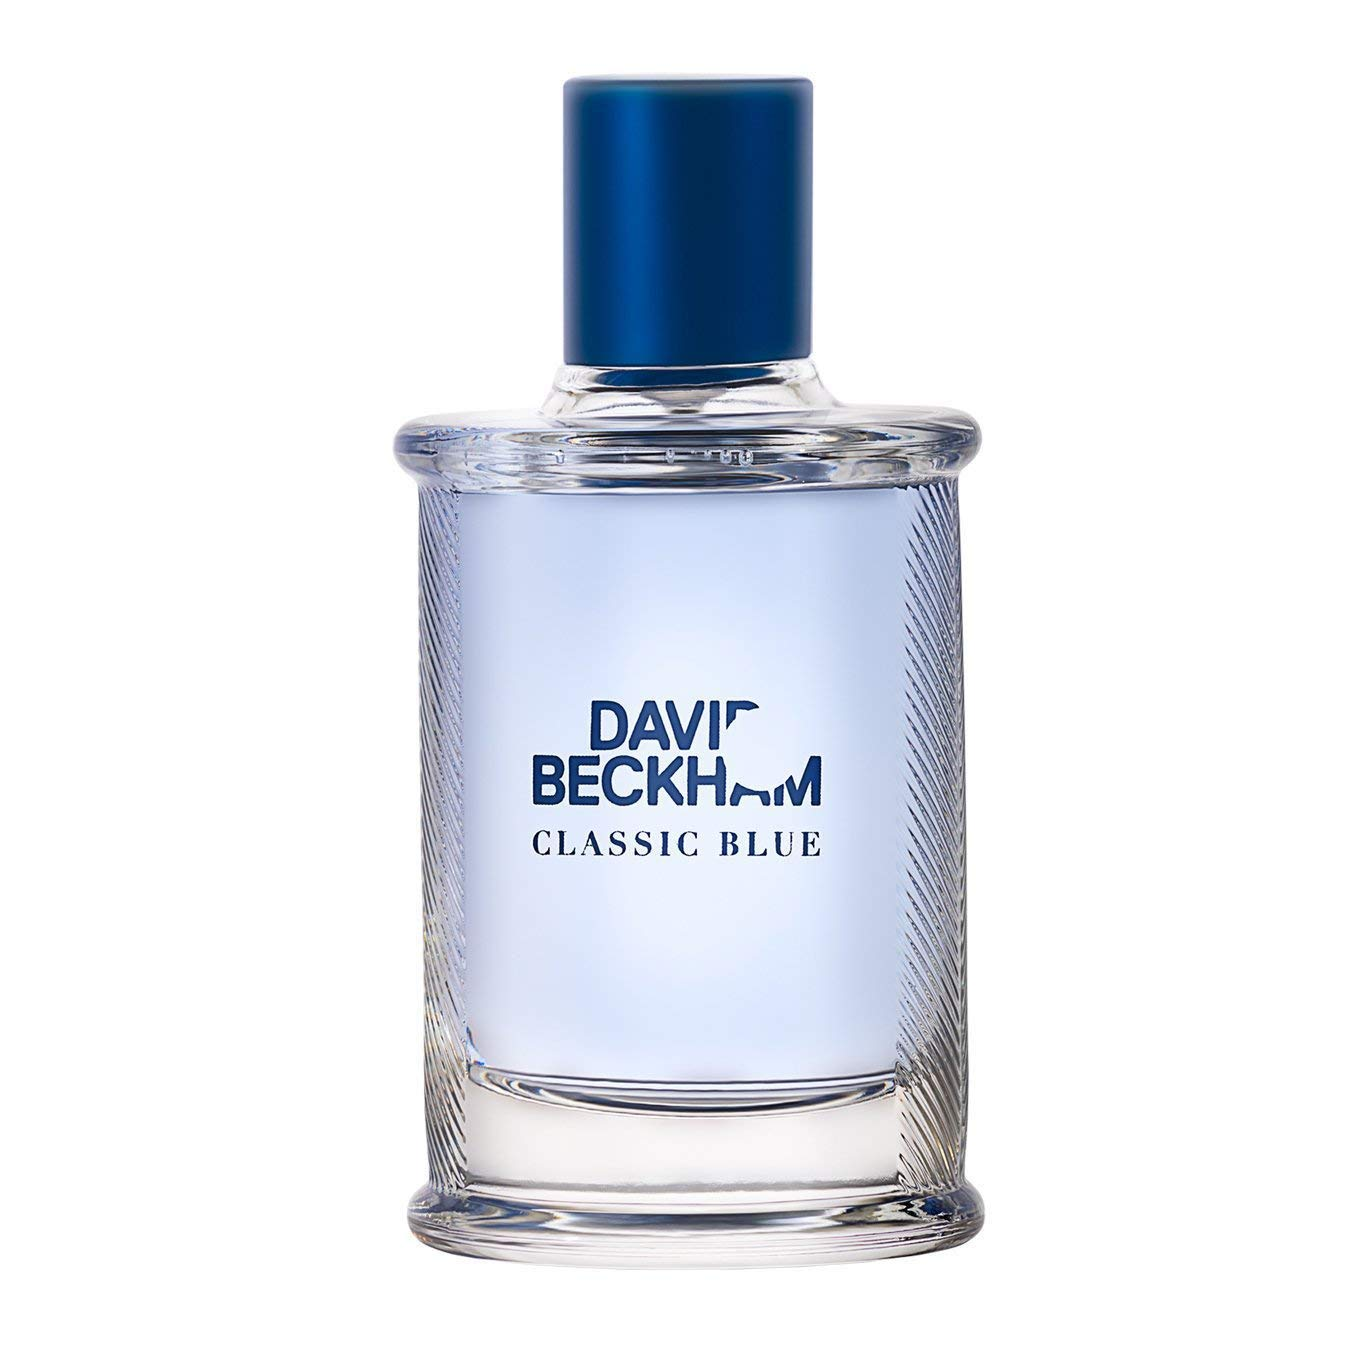 David Beckham Classic Blue Agua de Colonia - 60 ml 32777811000